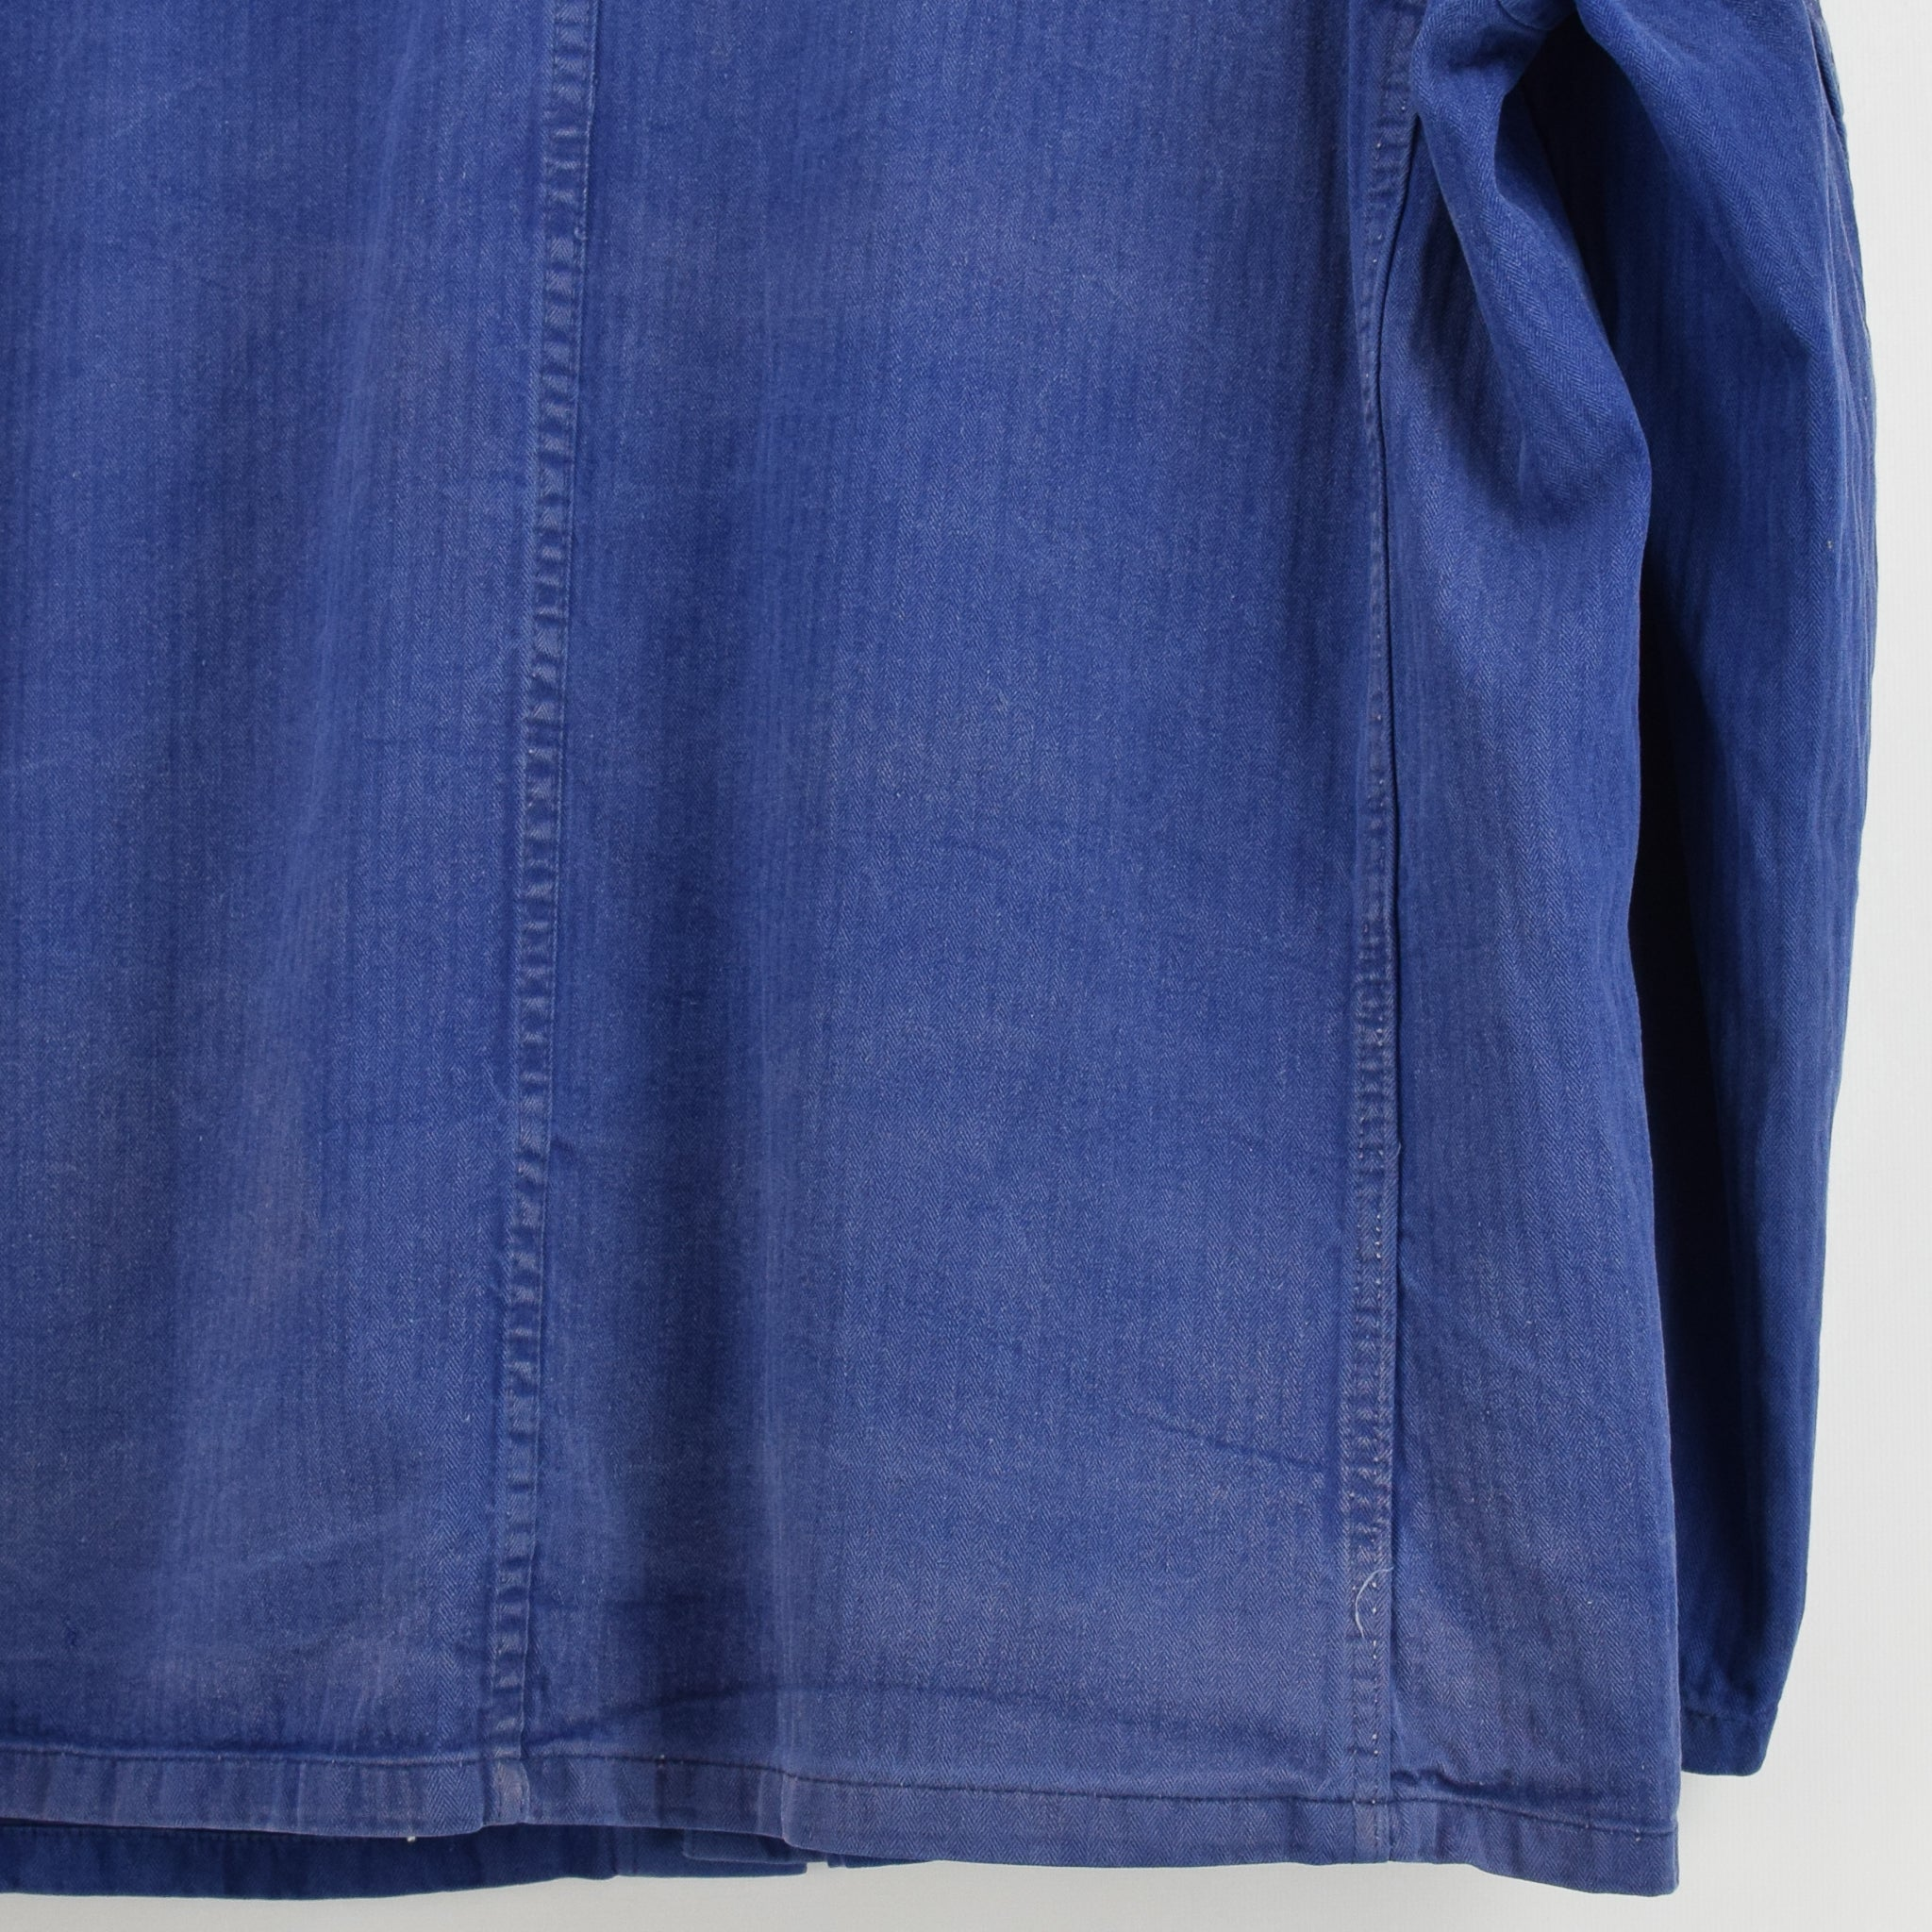 Vintage Distressed Blue French Style Worker Sanforized Cotton Chore Jacket L back hem